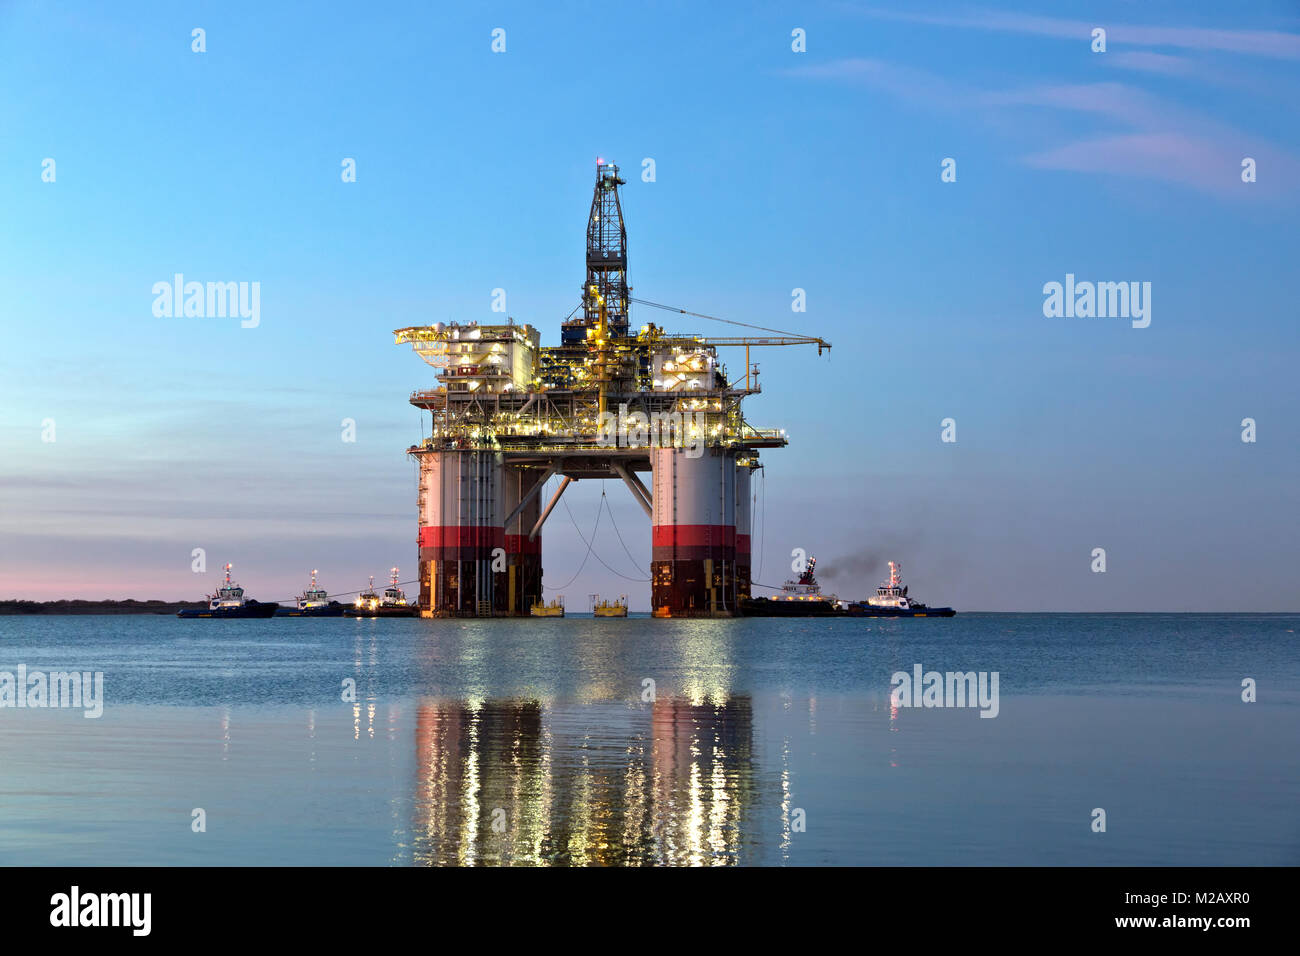 'Big Foot'  Chevron's Deep Ocean Platform departs Kiewit Industries at dawn, oil & natural gas drill - Stock Image